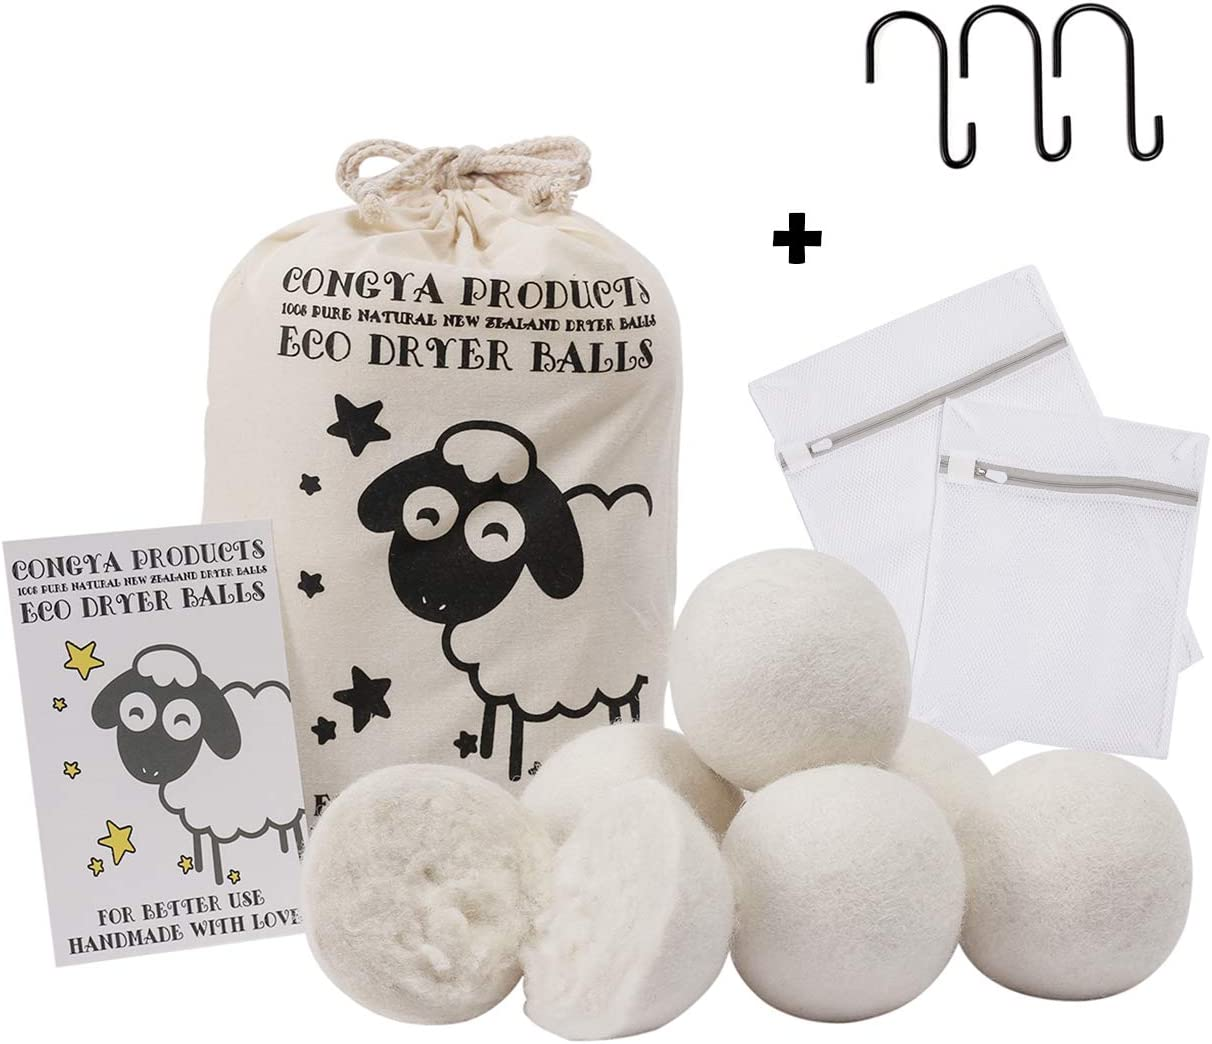 Wool Dryer Balls Organic, Natural Eco Felt Dryer Balls Laundry Reusable Fabric Softener Ball Reduce Wrinkles 6 Pack White XL Christmas Present